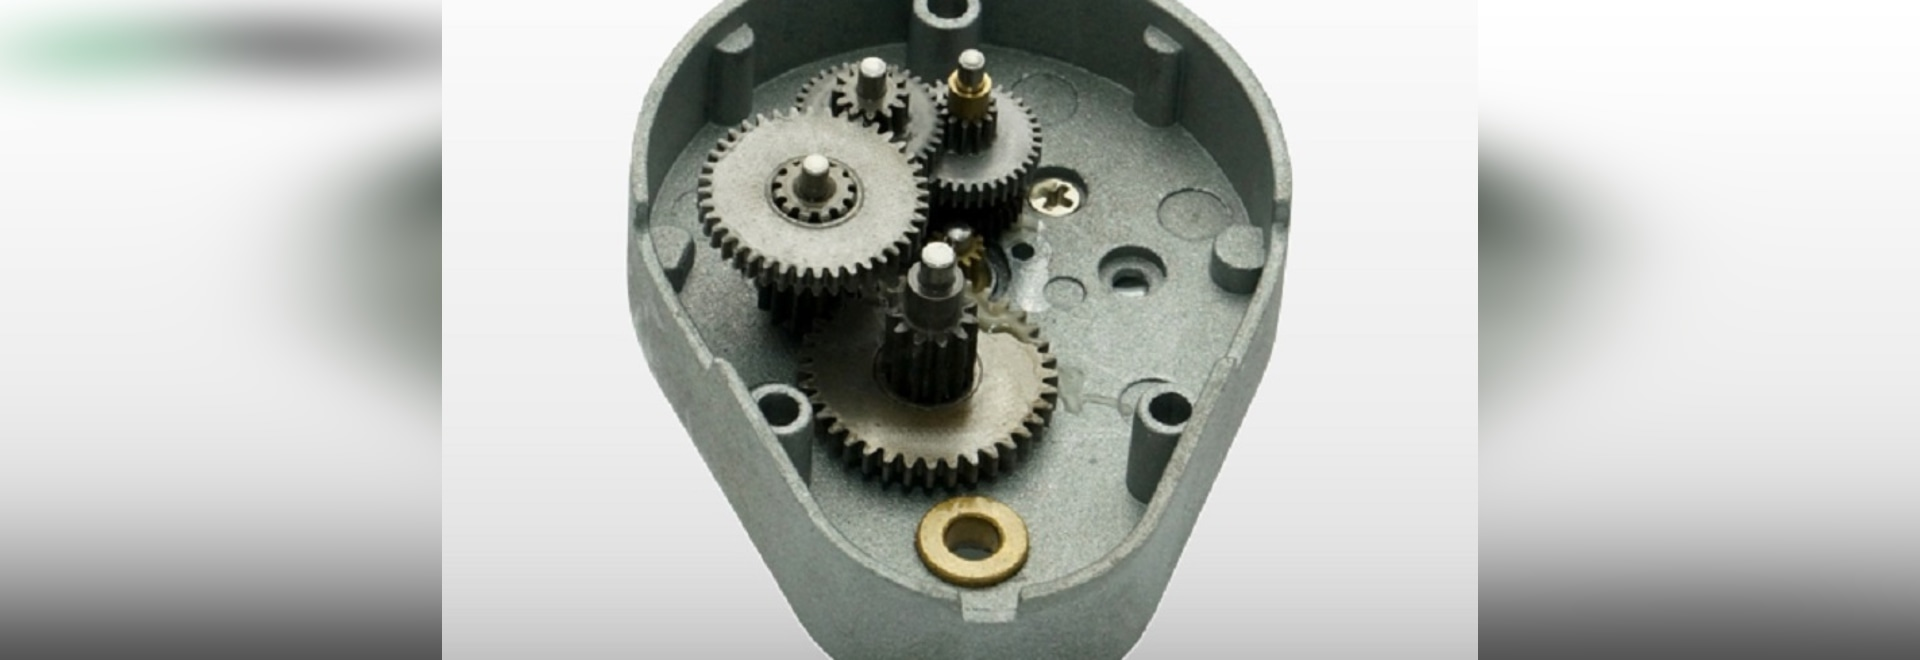 Q&A For Ovoid Gearbox